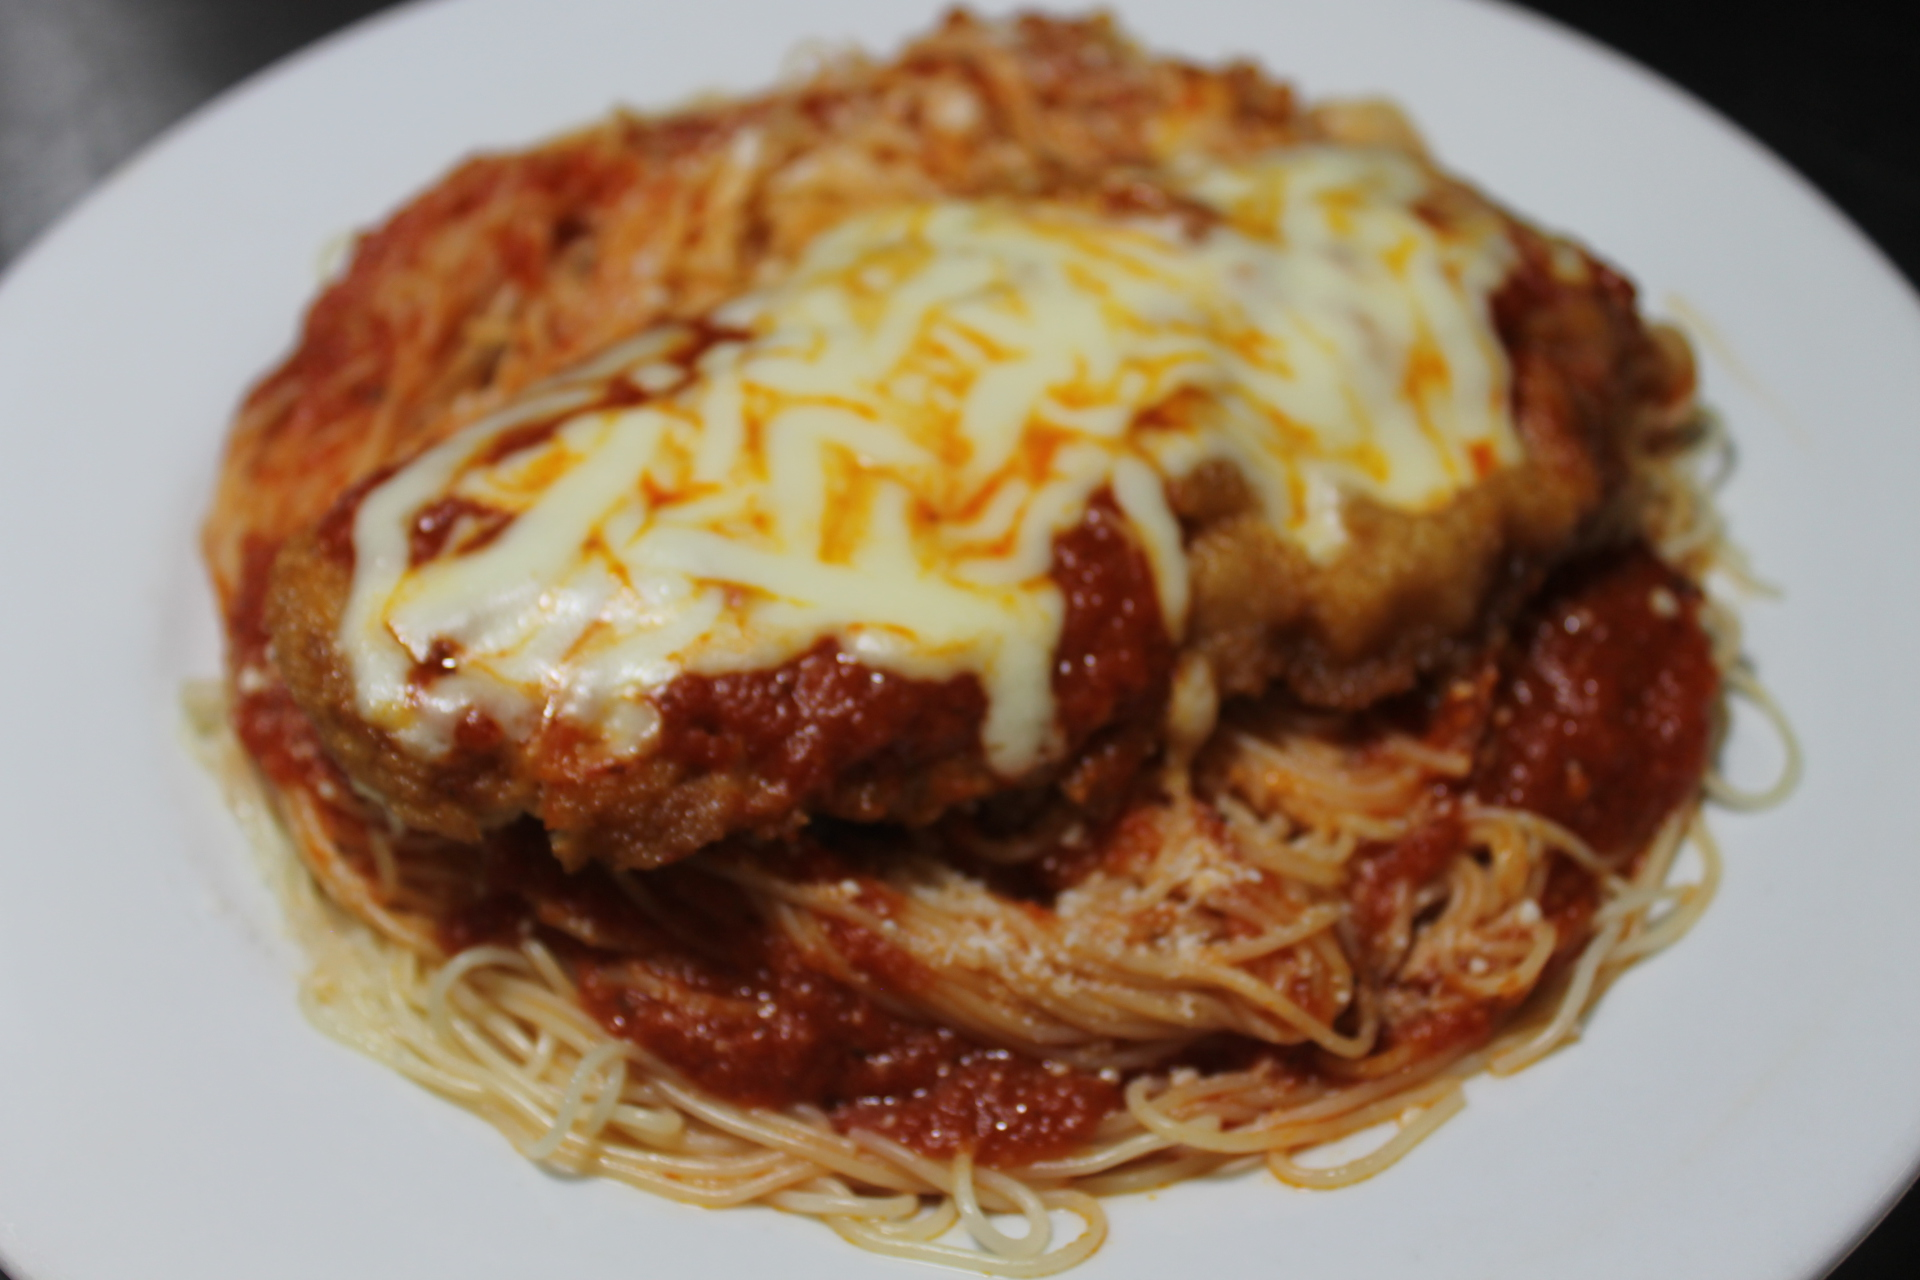 Our Top Seller, Chicken Parmesan